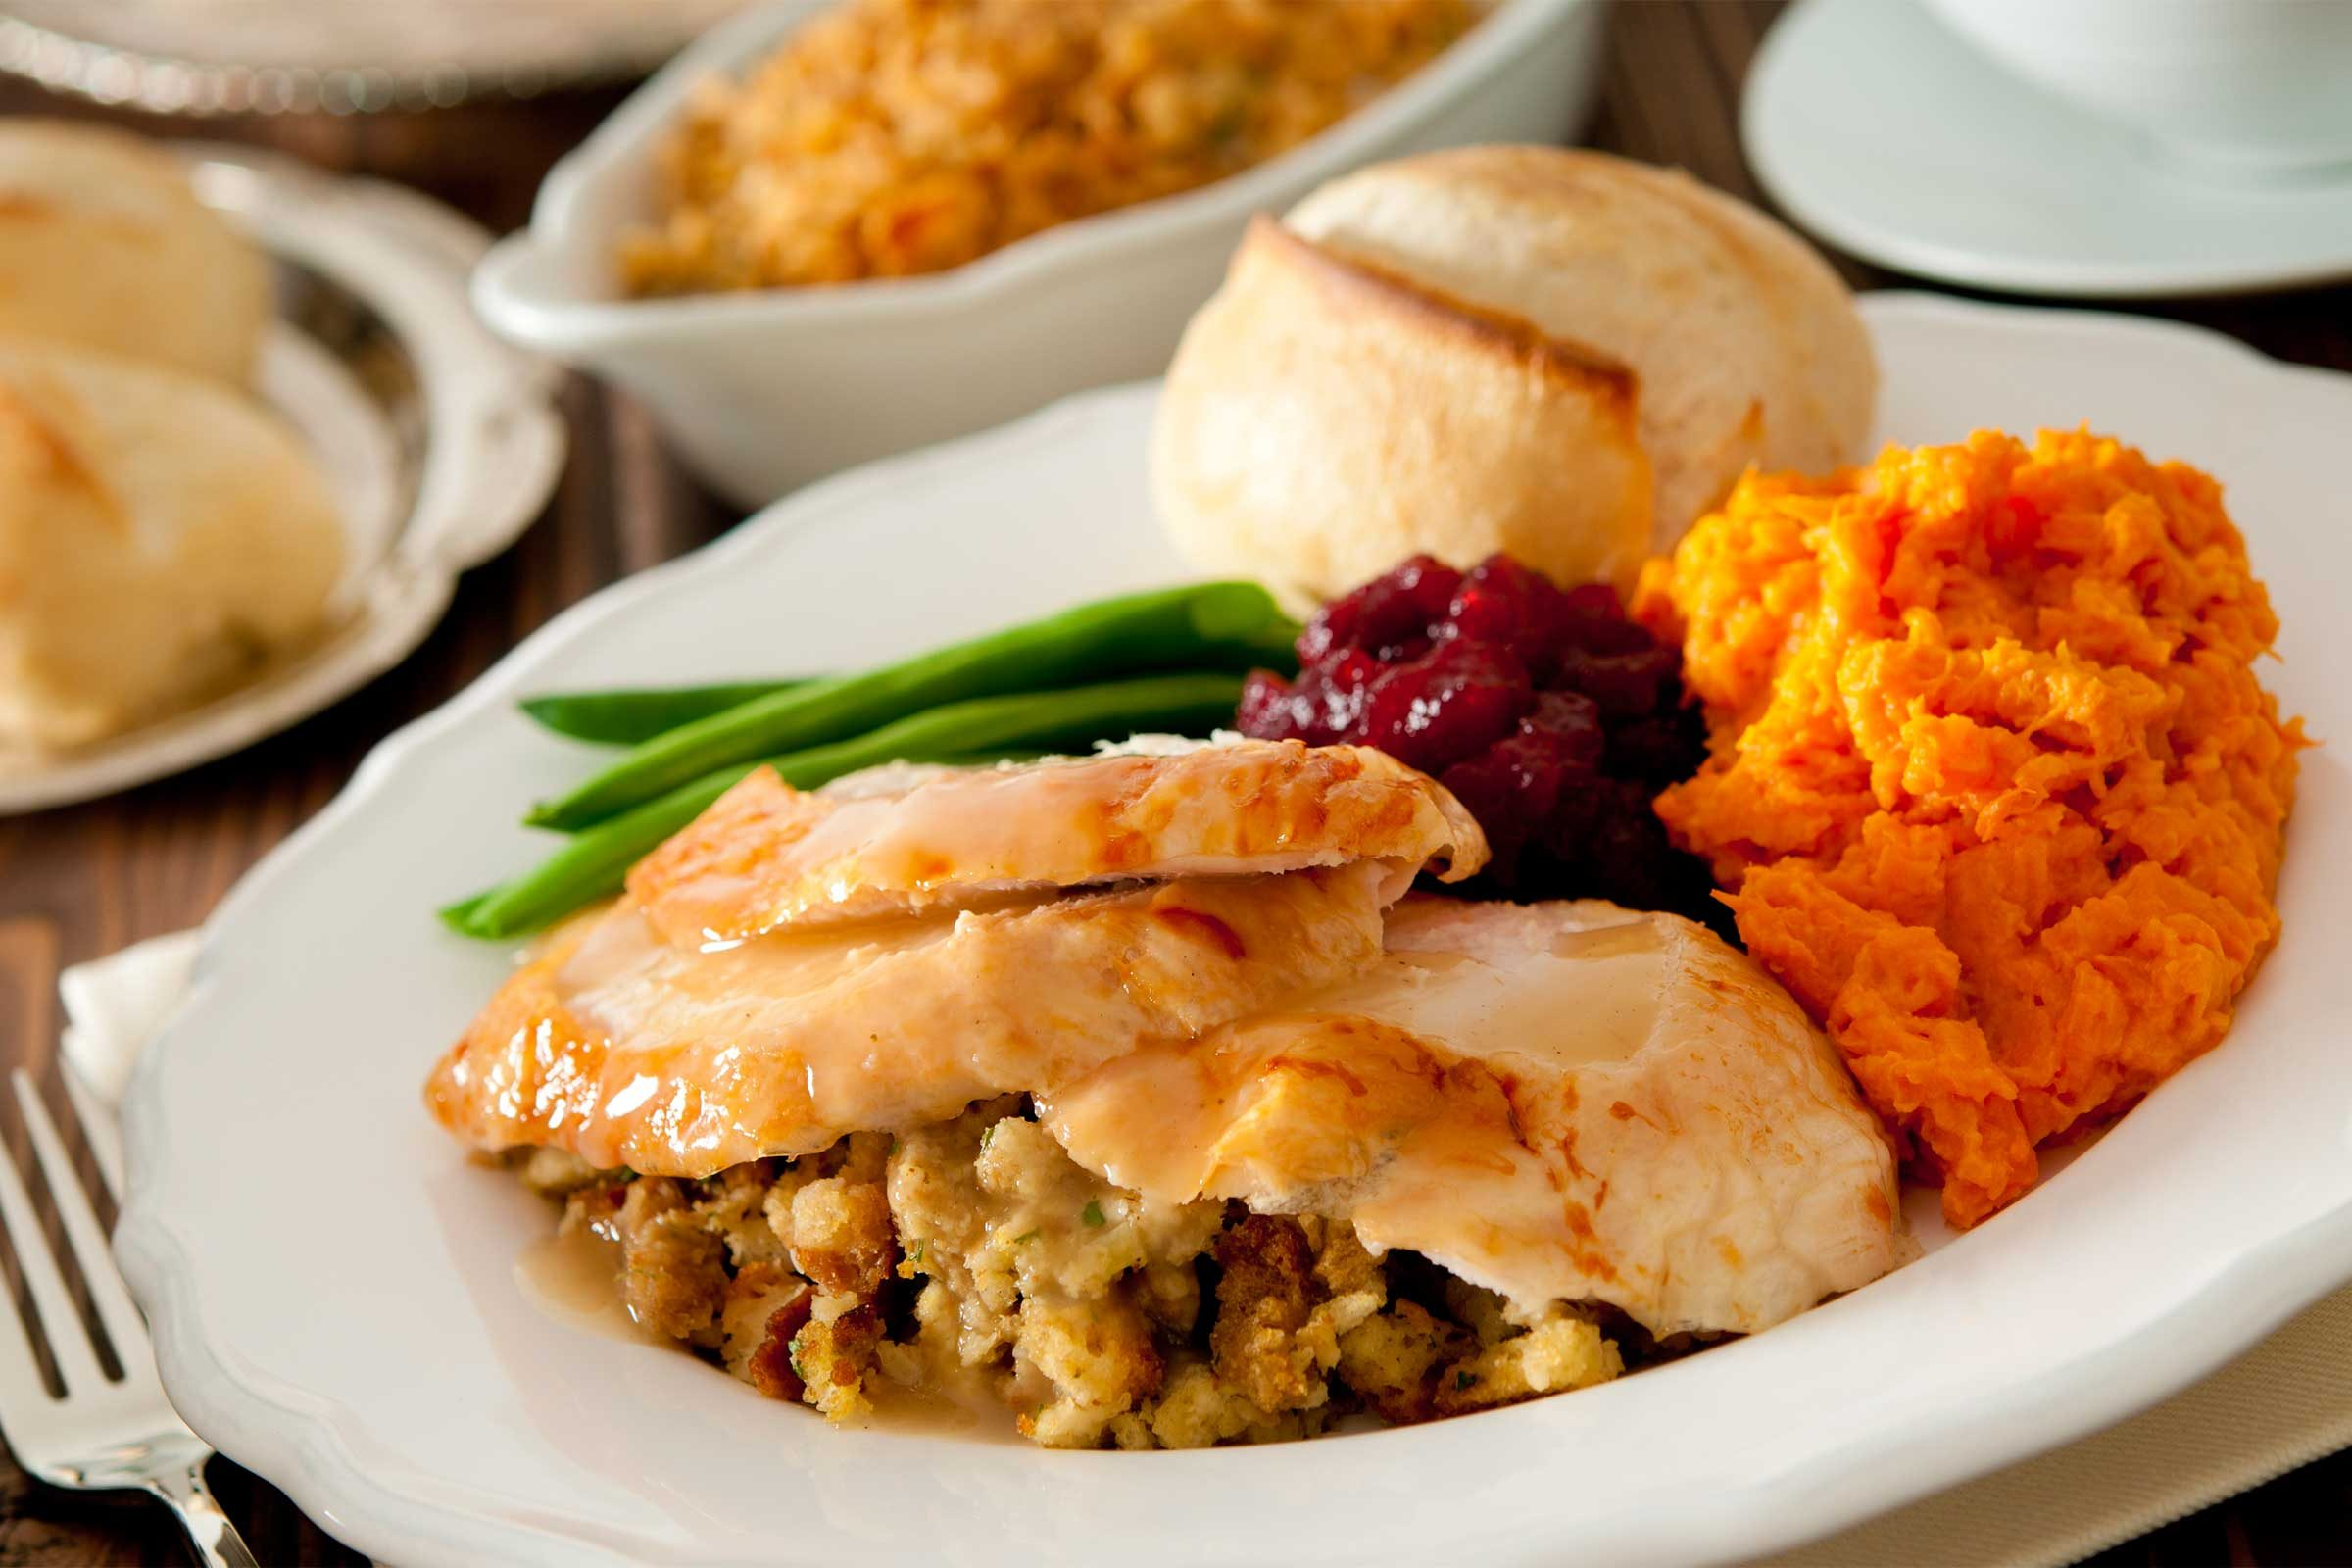 Healthy thanksgiving foods reader 39 s digest for Cuisine 2 go